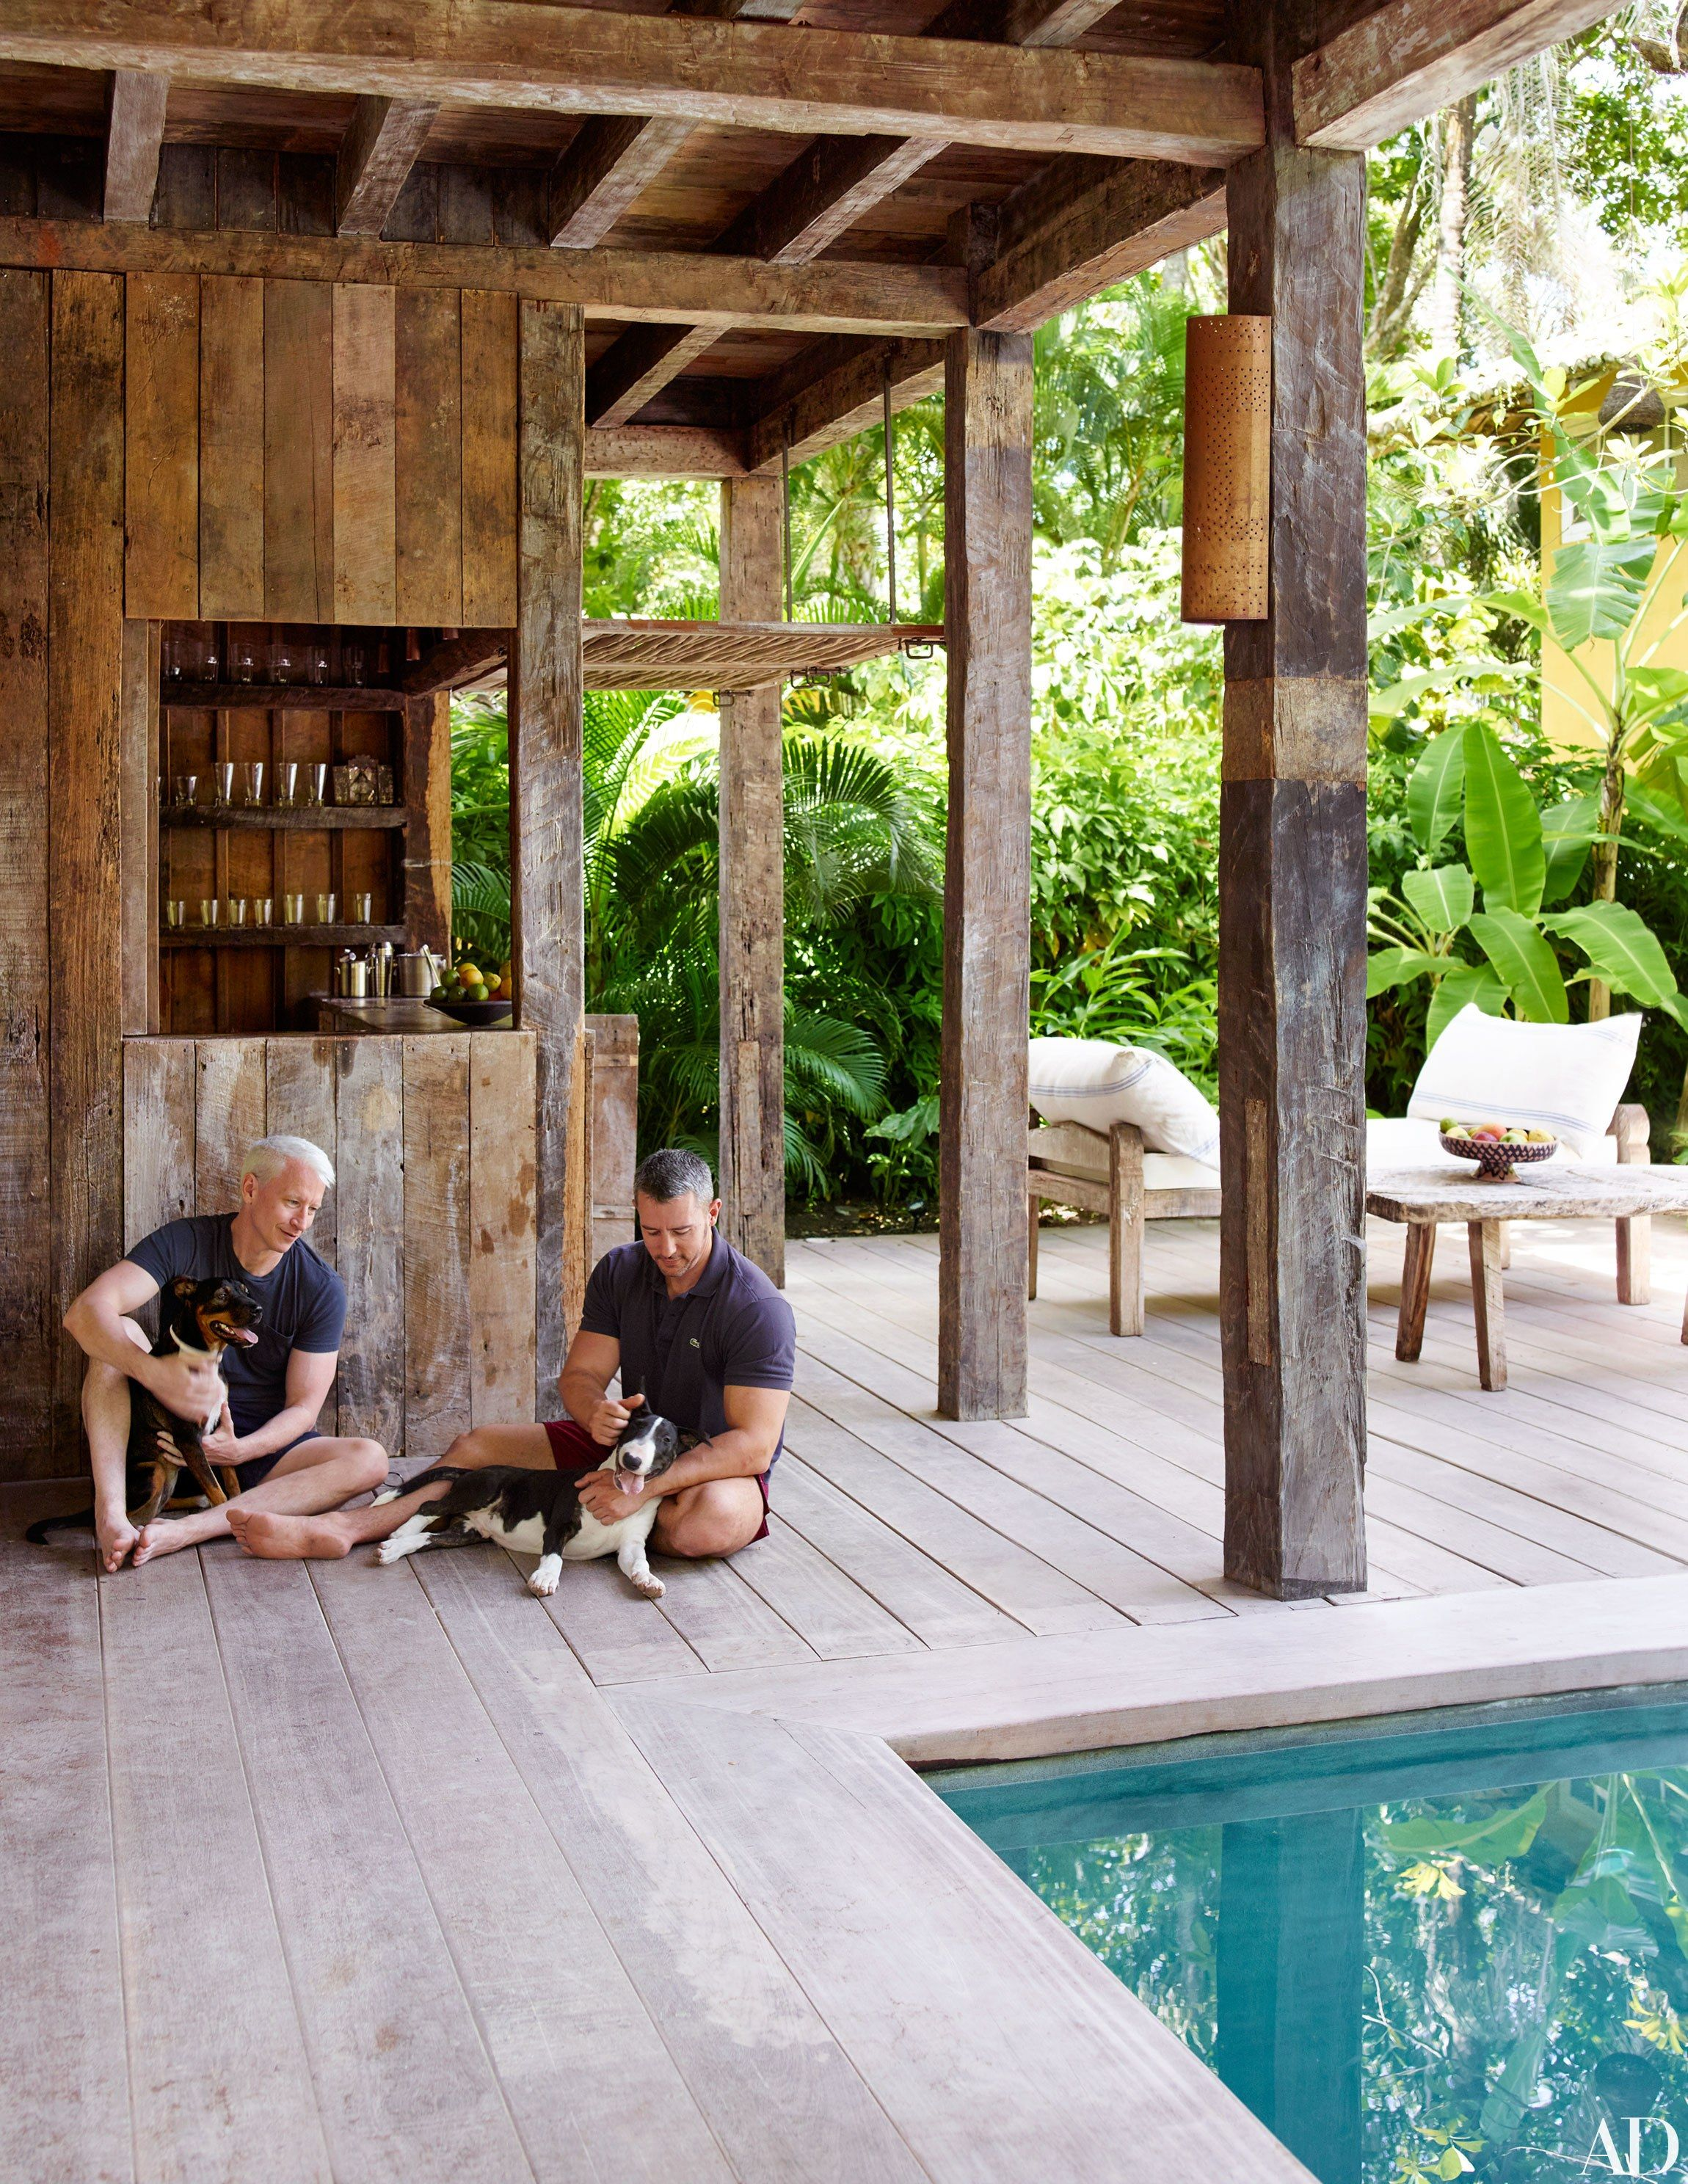 Anderson cooper s brazilian rest house is a vintage and rustic dream - Go Inside Anderson Cooper S Trancoso Brazil Vacation Home